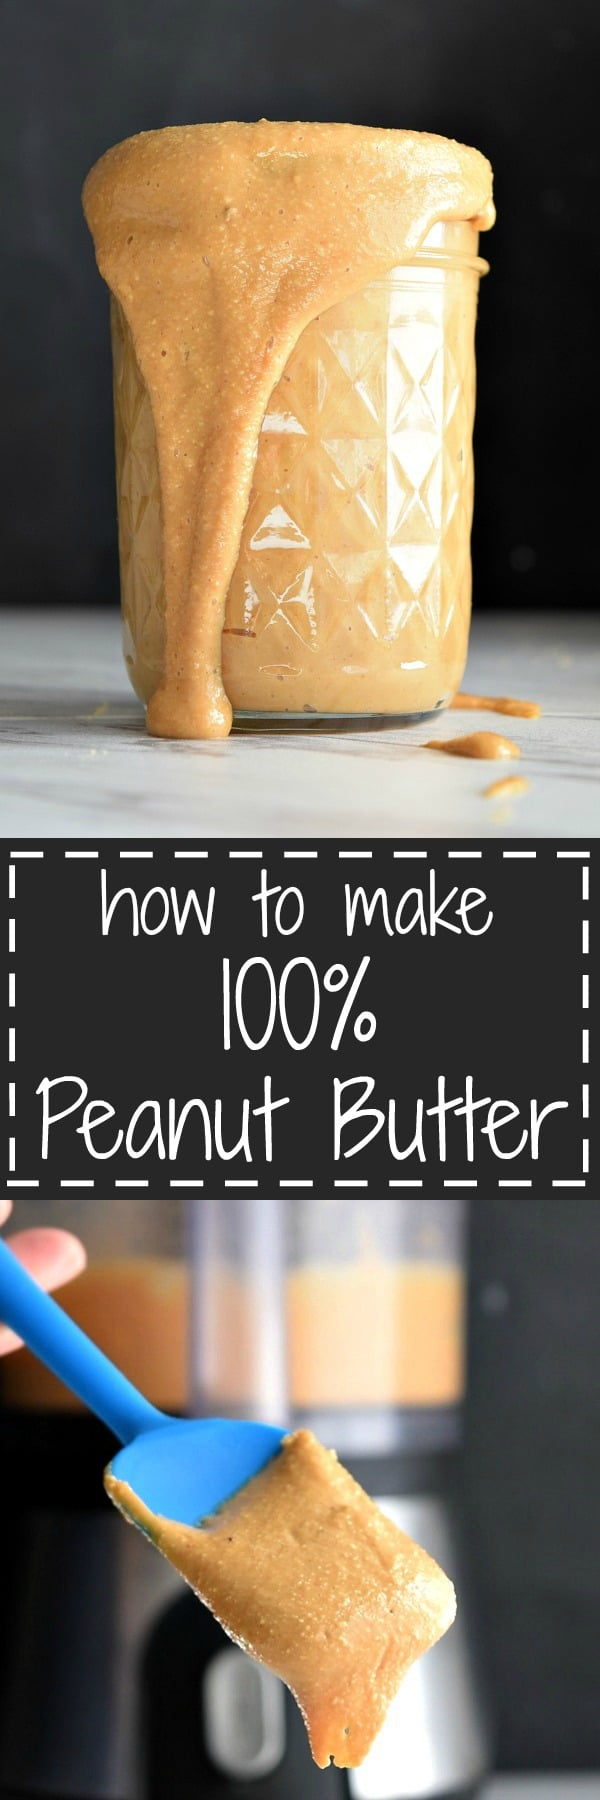 How to make 100% peanut butter